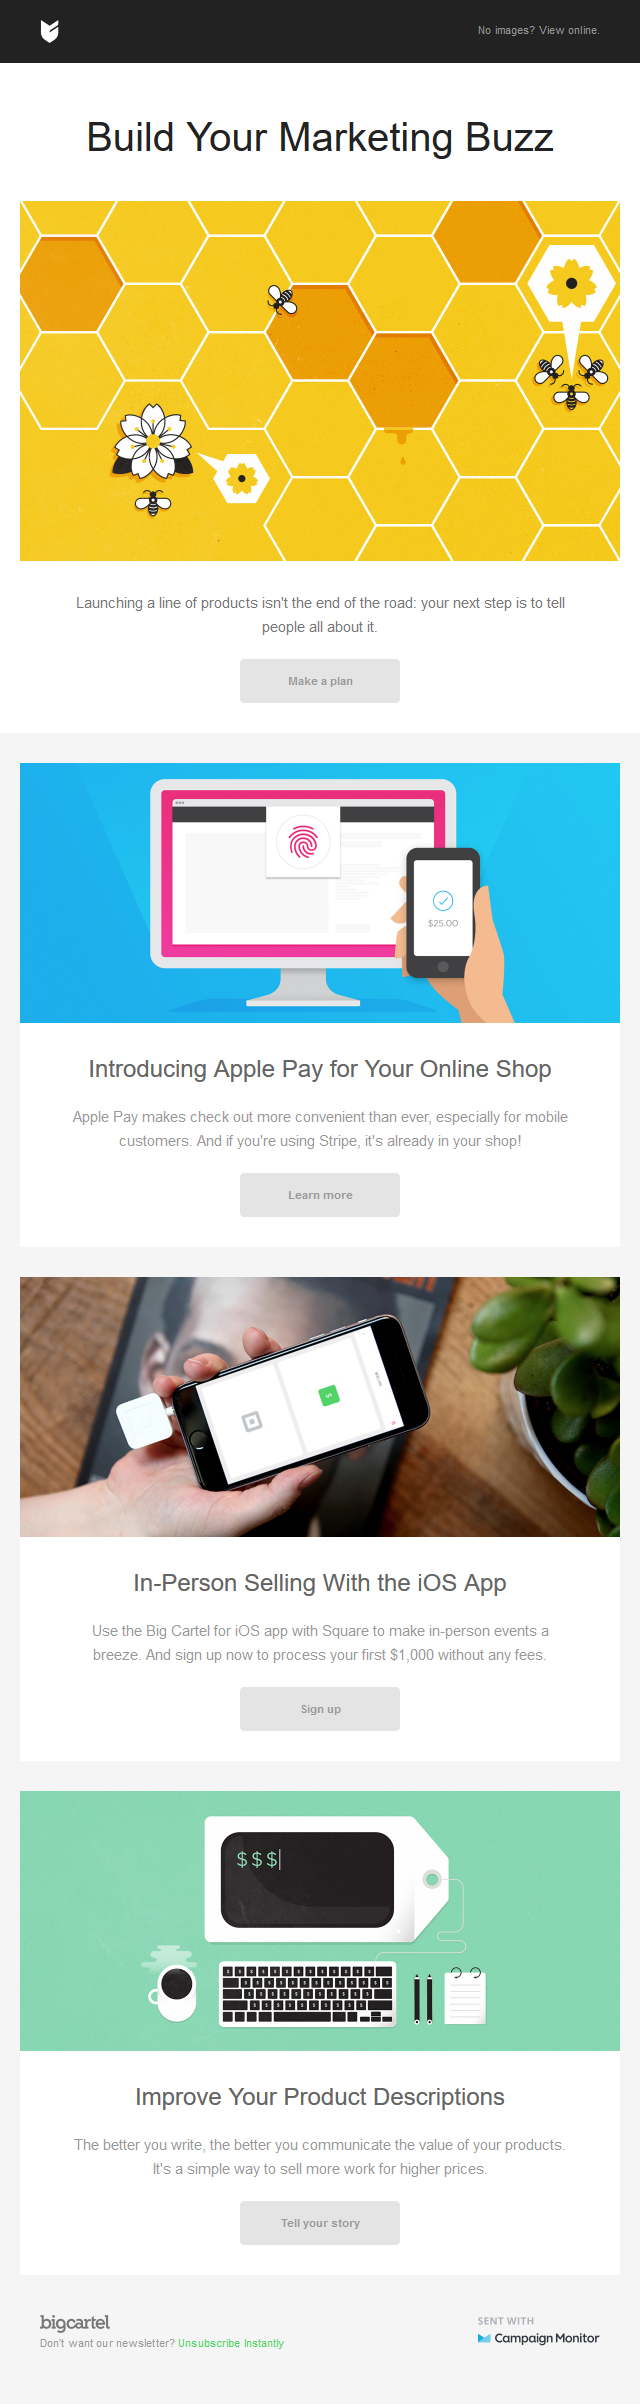 Improve your marketing, sell with Apple Pay, and more